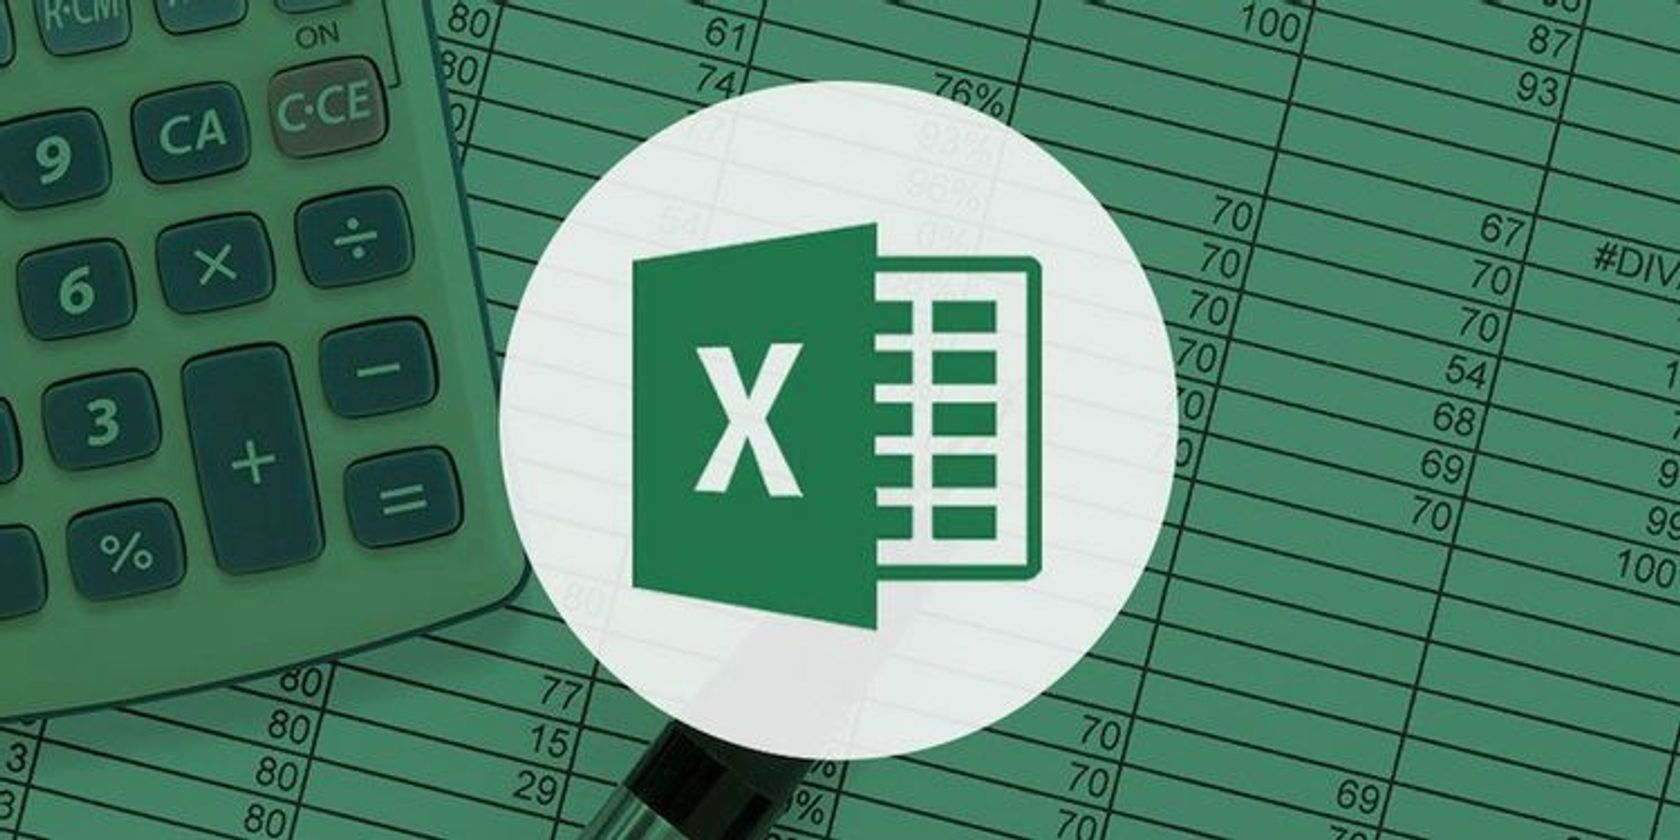 How to Add Numbers in Excel With the Sum Function